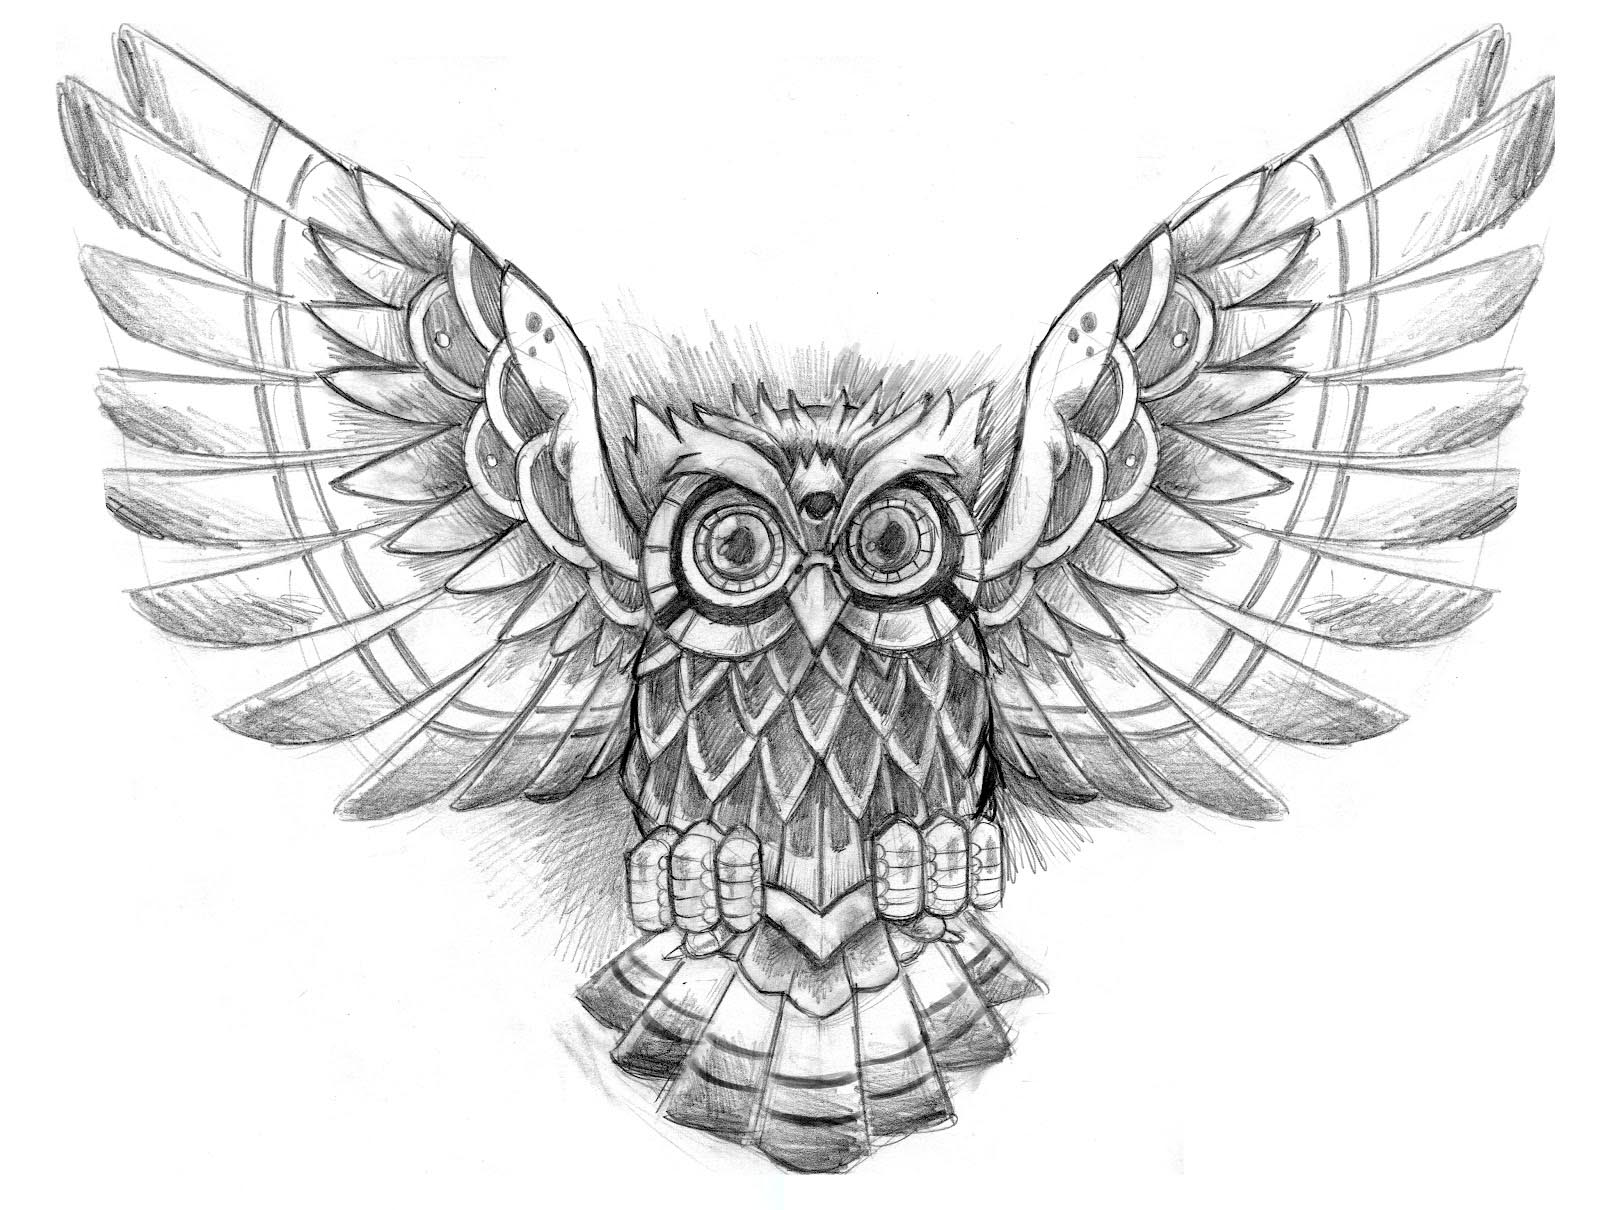 Flying owl pencil drawings - photo#26